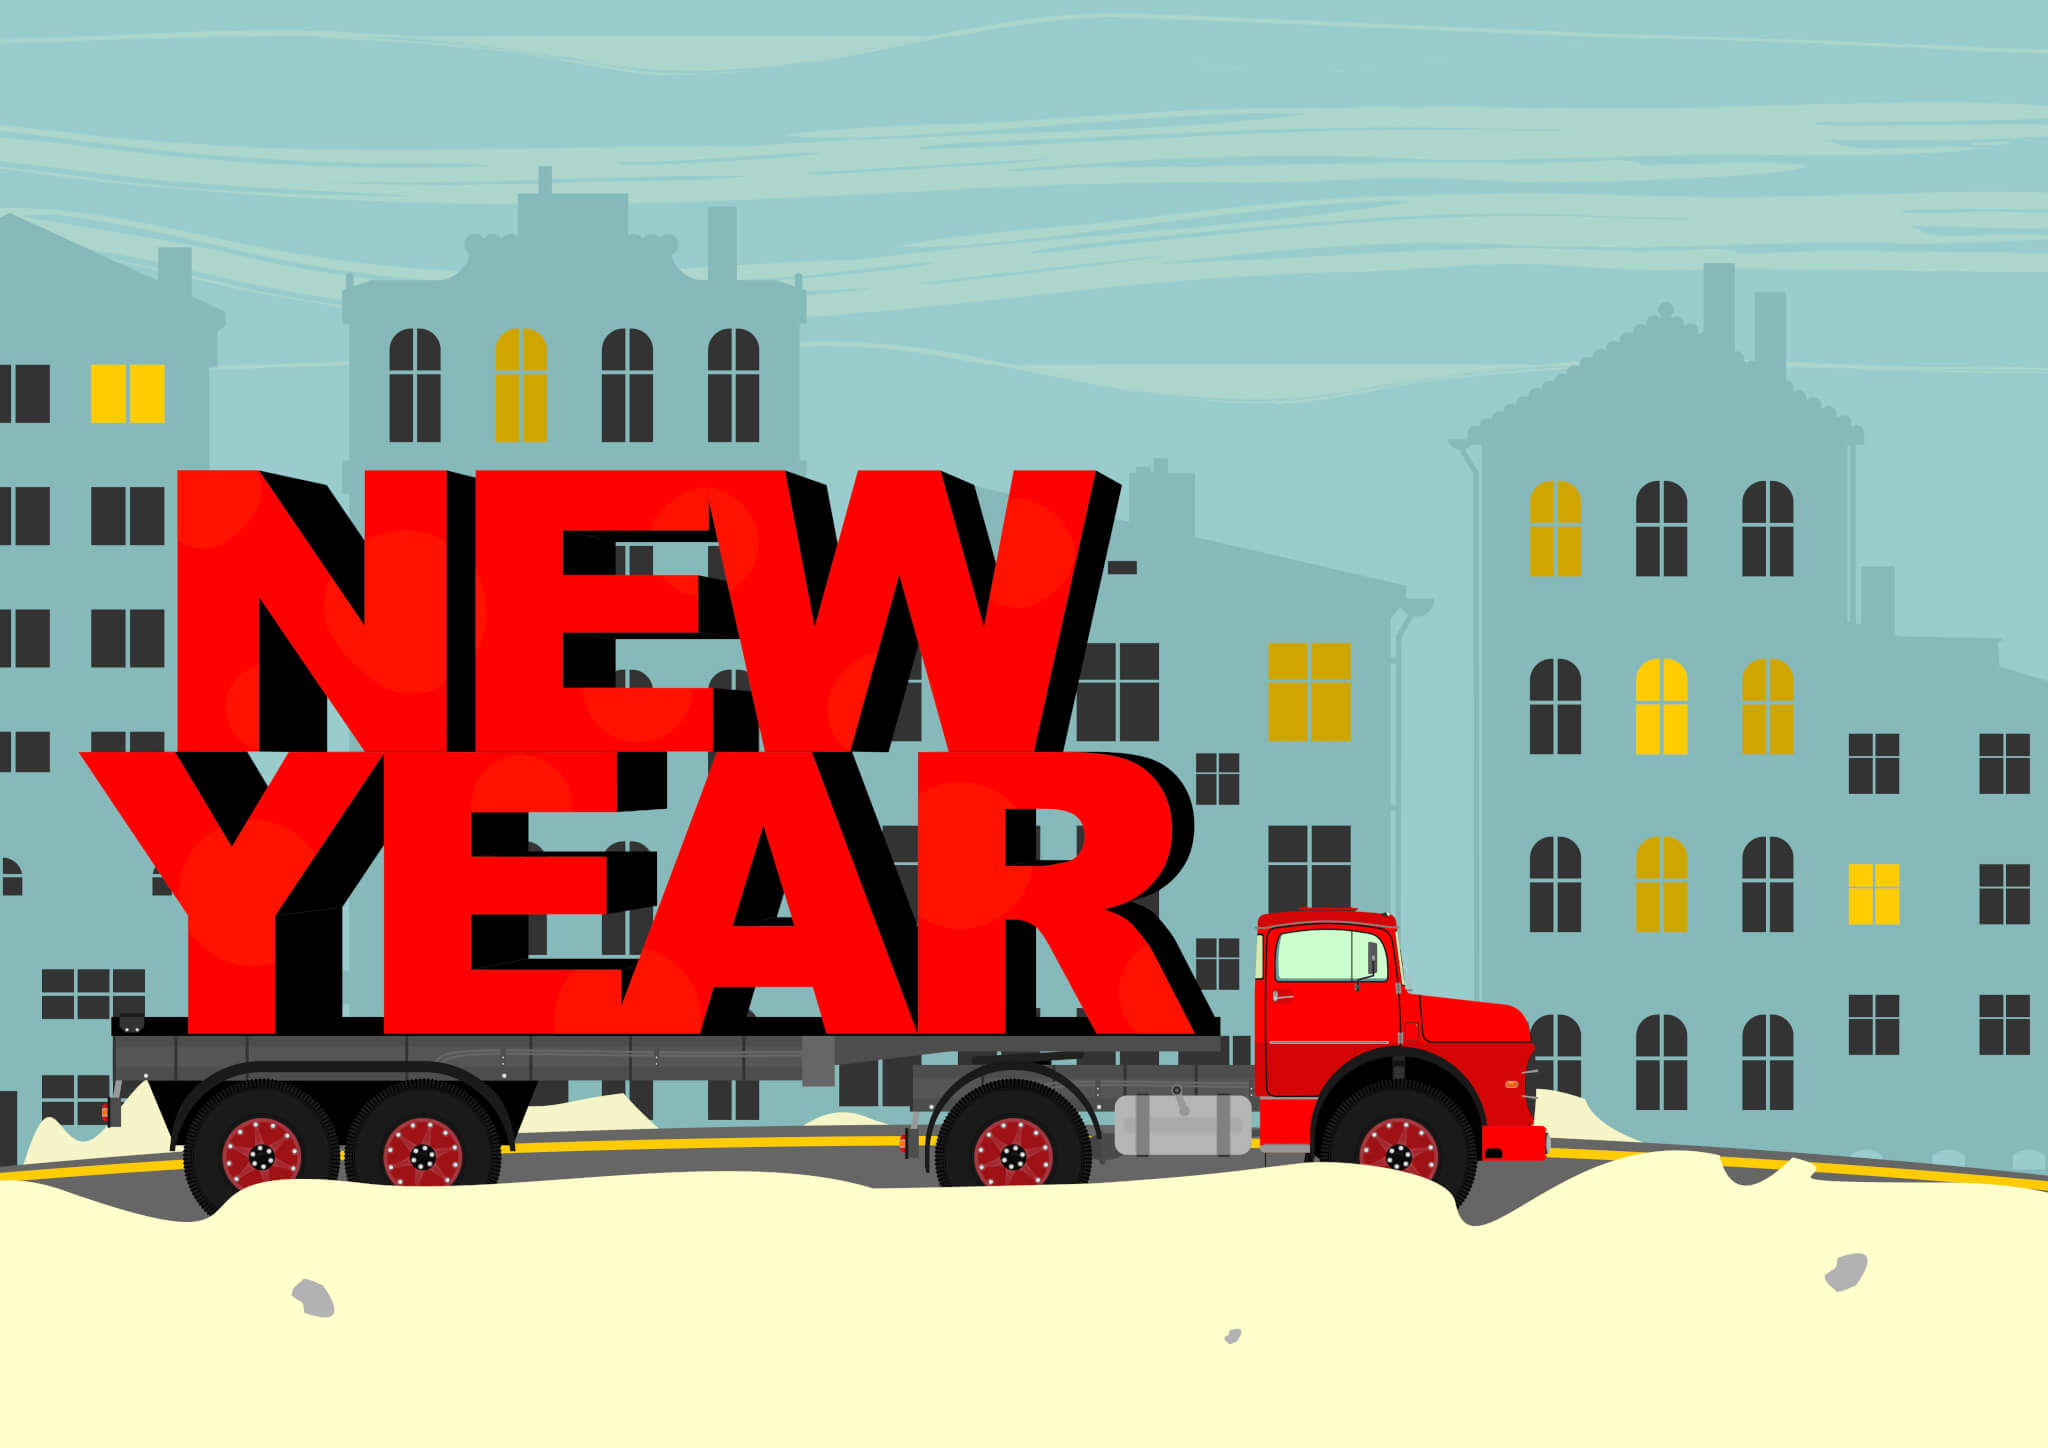 New year truck